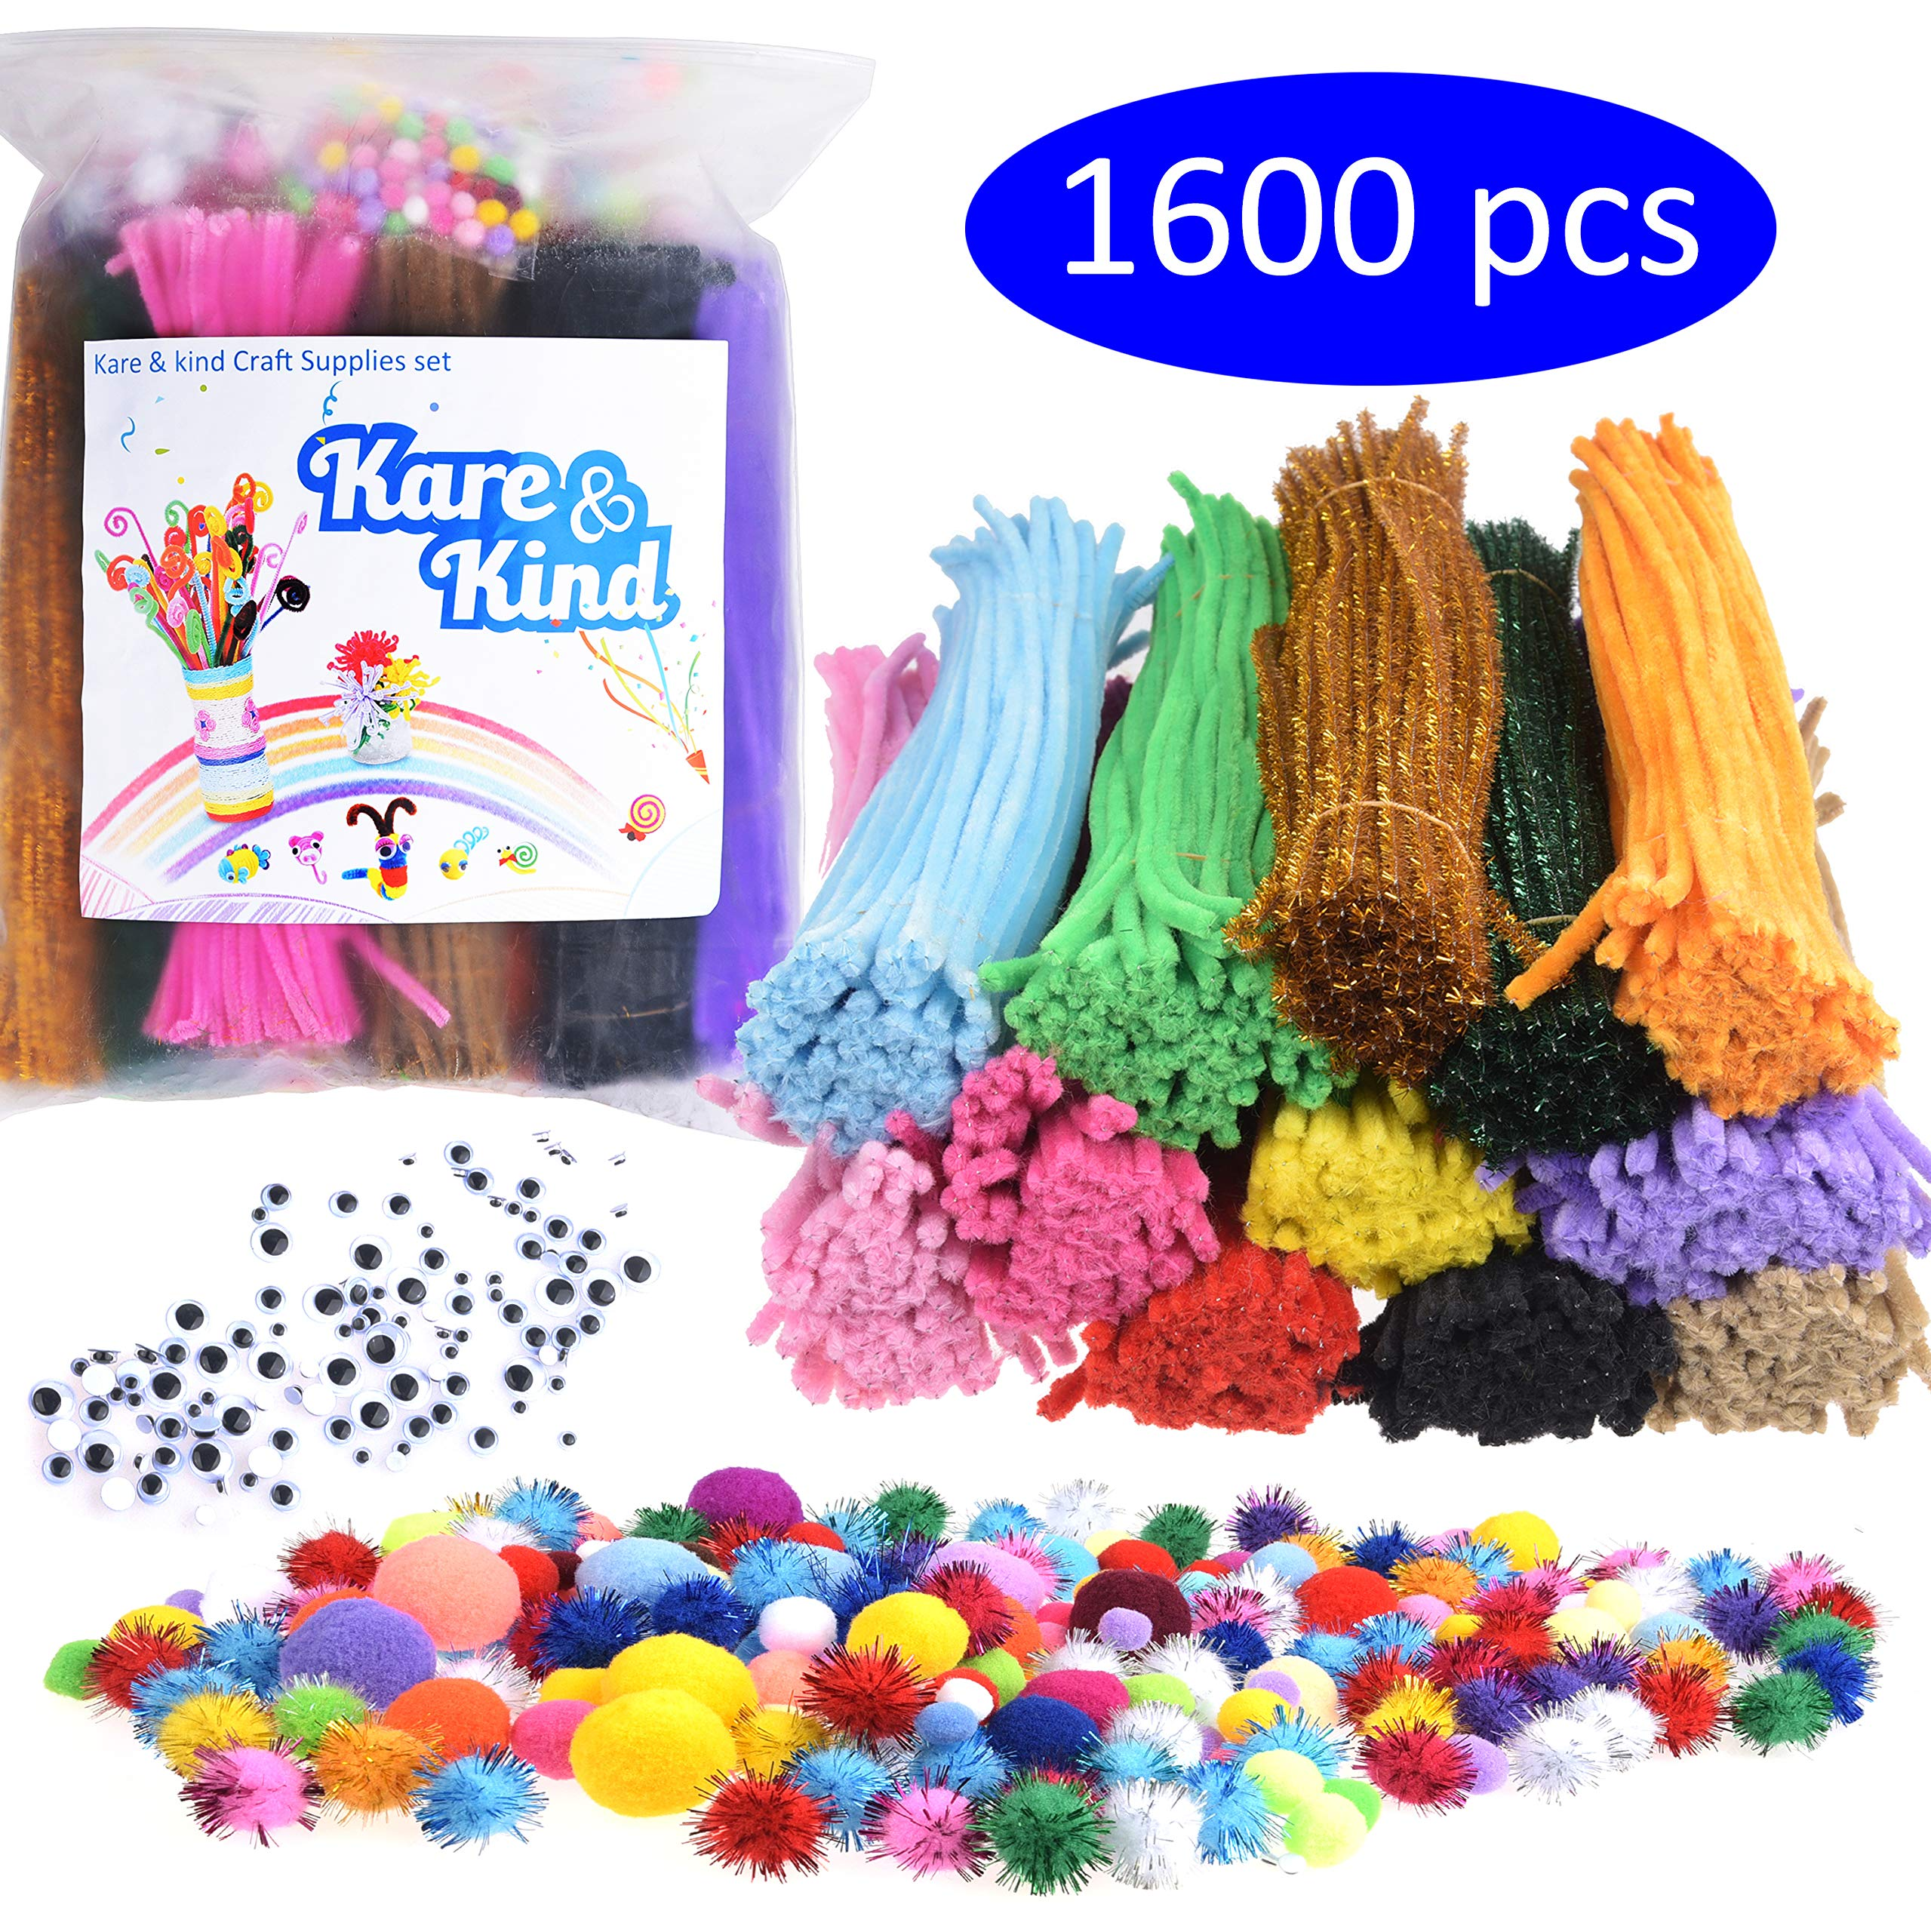 Kare & Kind Craft Supplies Set - 1600 pcs Art Materials - 1000 pcs Colored Pipe Cleaners; 200 pcs Glitter Pipe Cleaners; 200 pcs Colored Pom Poms; 50 pcs Glitter Pom Poms; 150 pcs Wiggle Googly Eyes